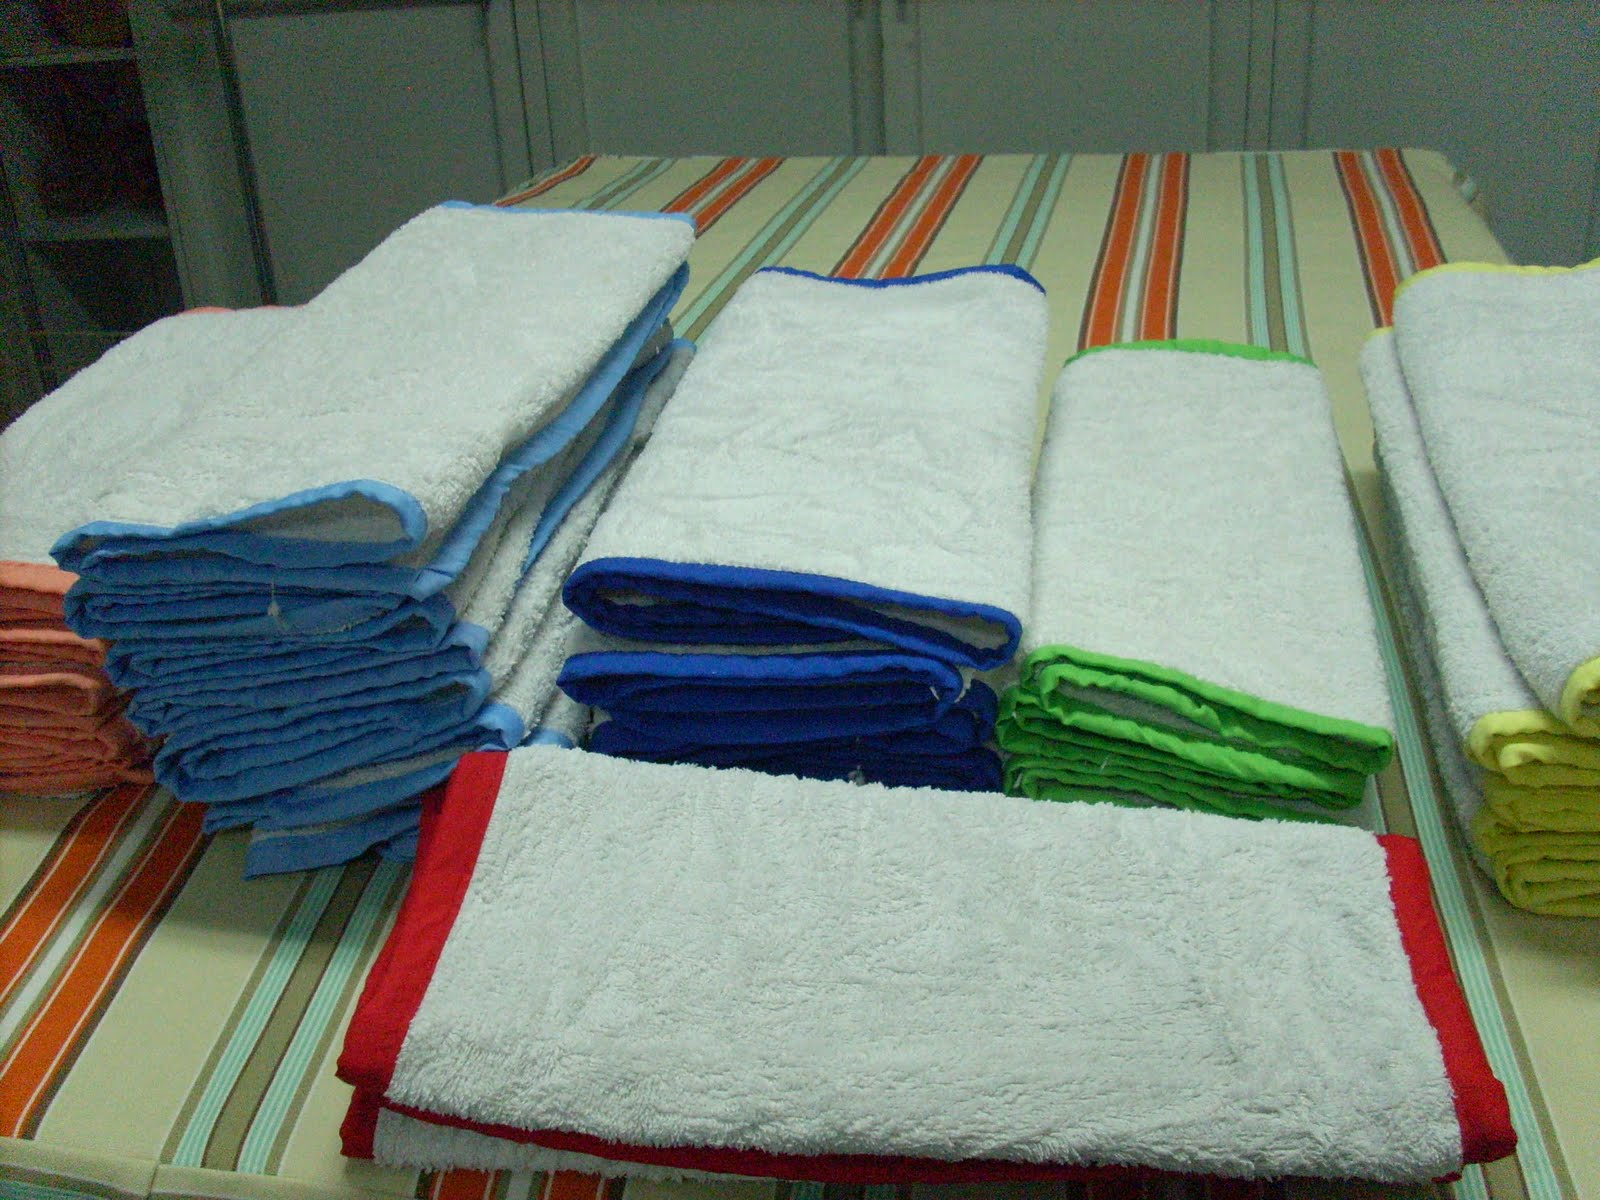 What to do with your old bathtowels home matters by anne - Seven mistakes we make when using towels ...